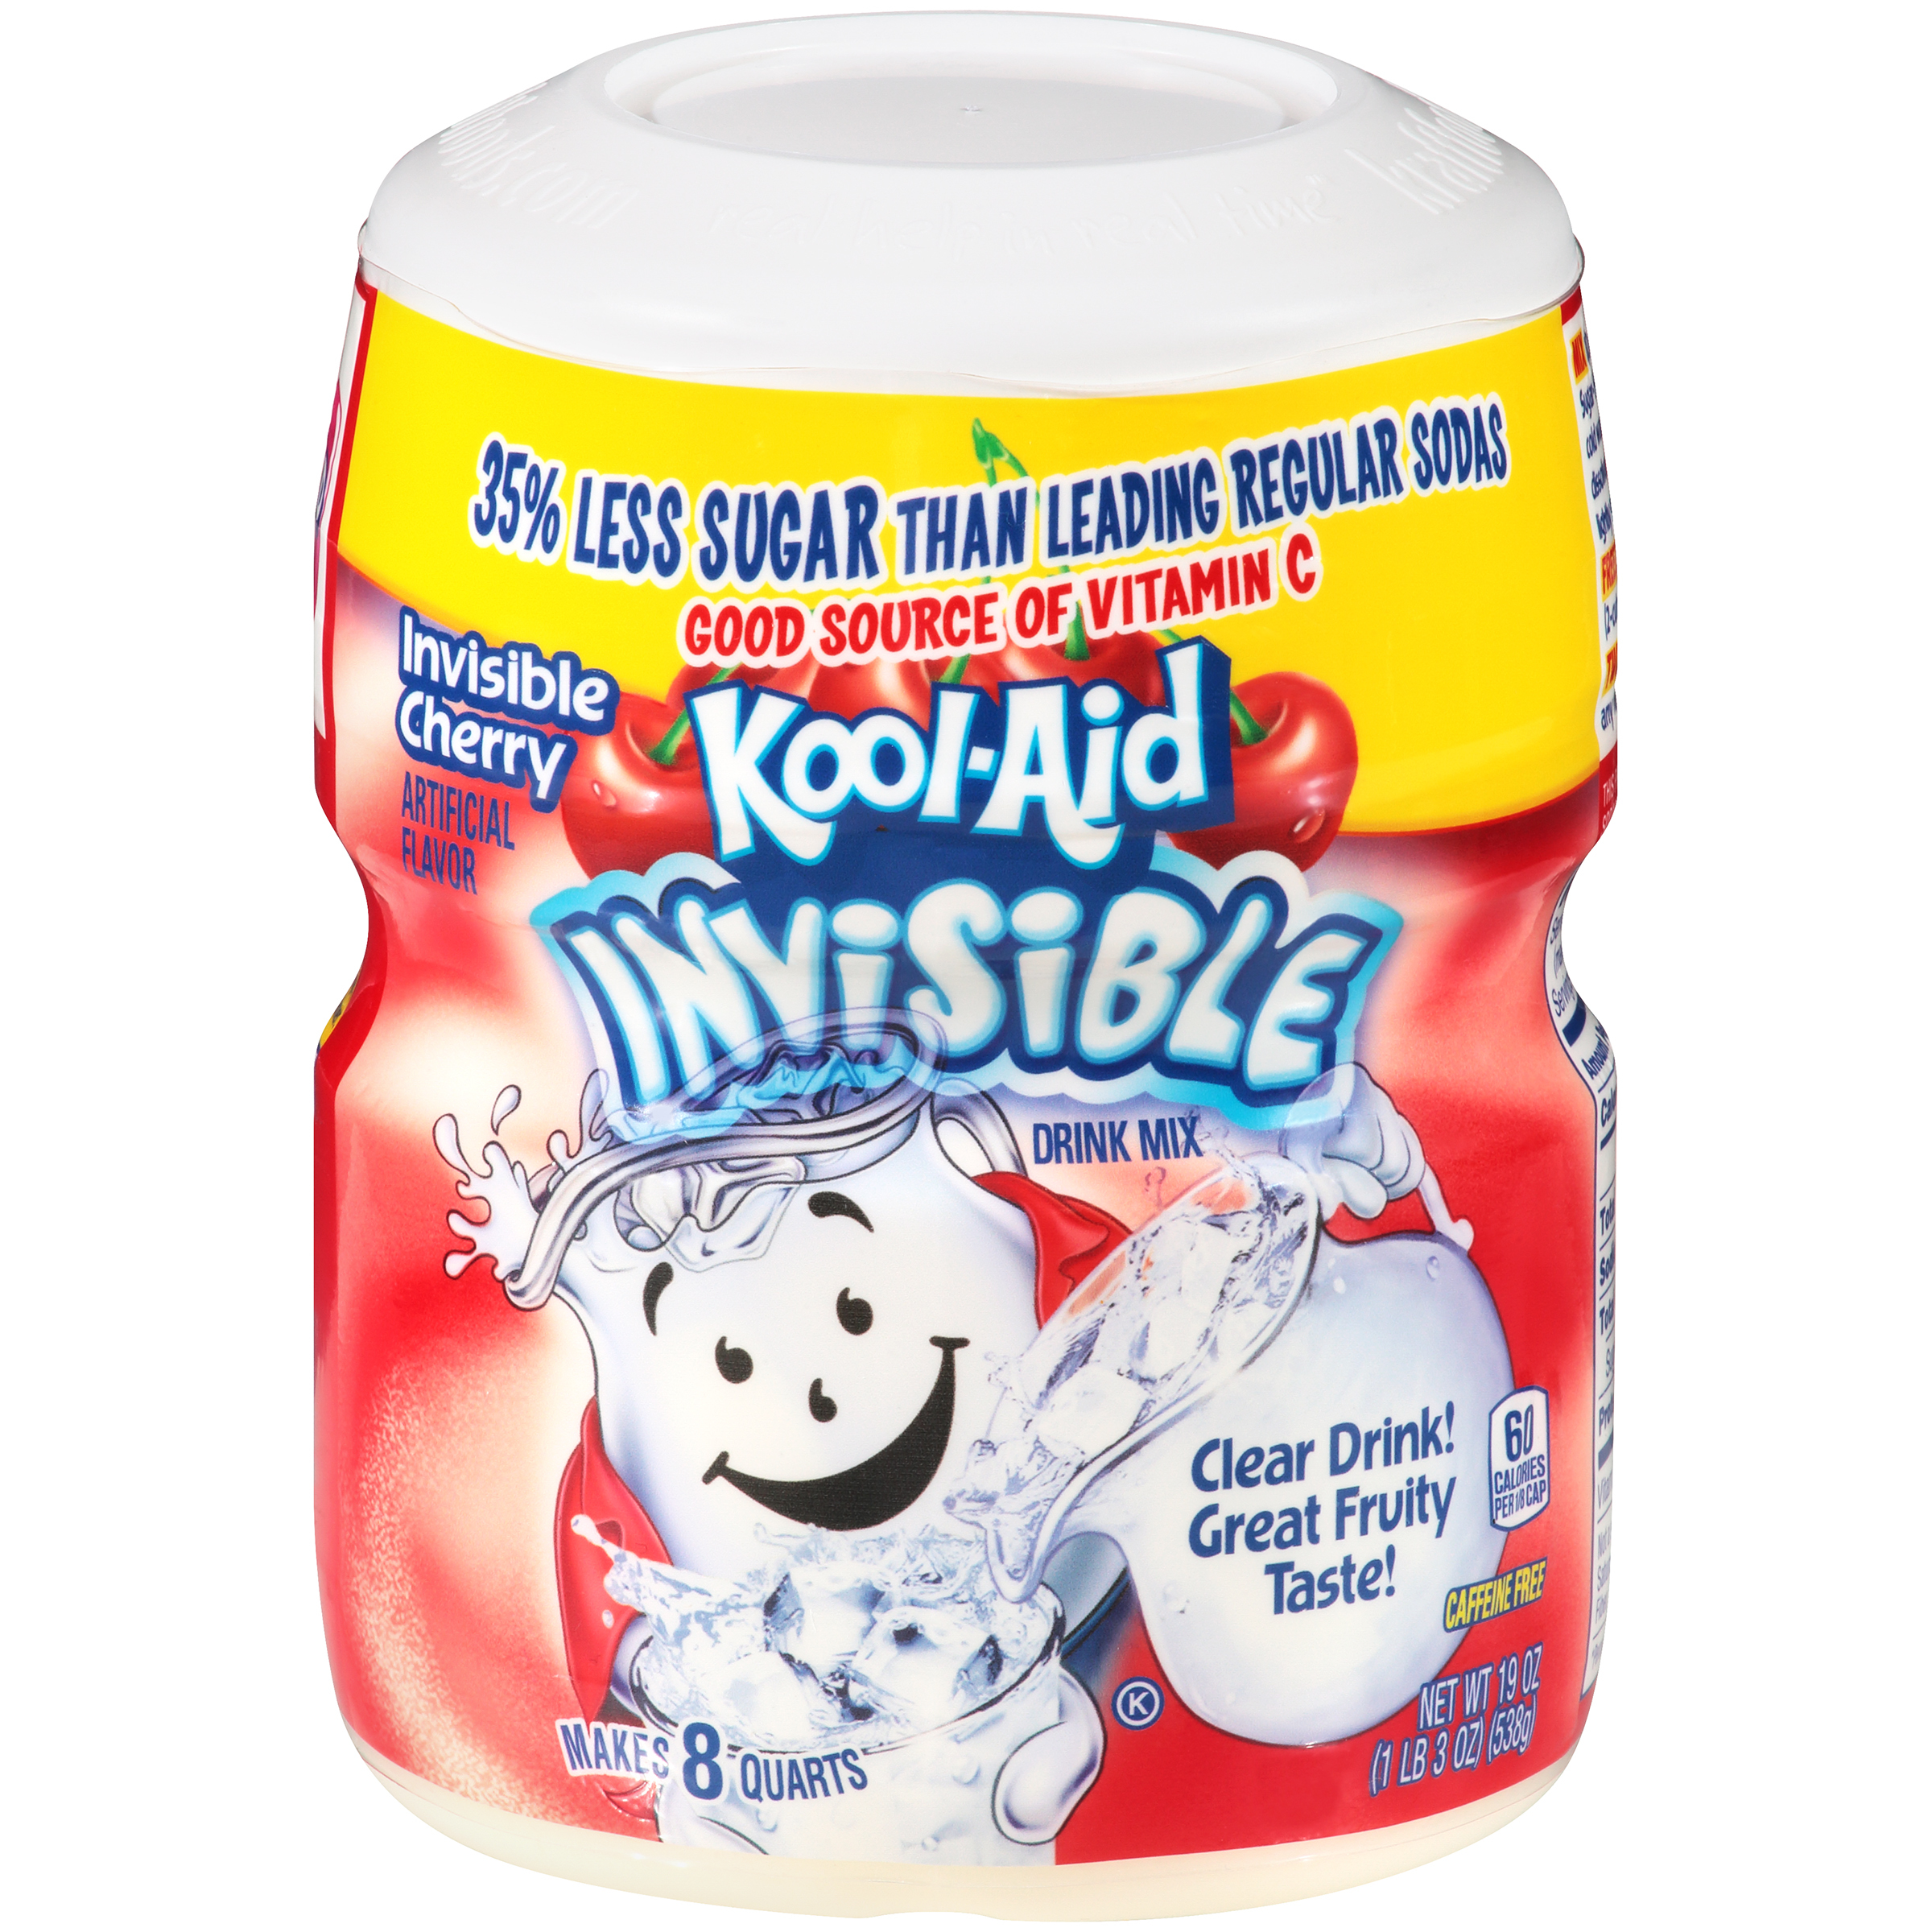 KOOL-AID Invisible Cherry  Drink Mix Sugar Sweetened 19 Oz Canister image